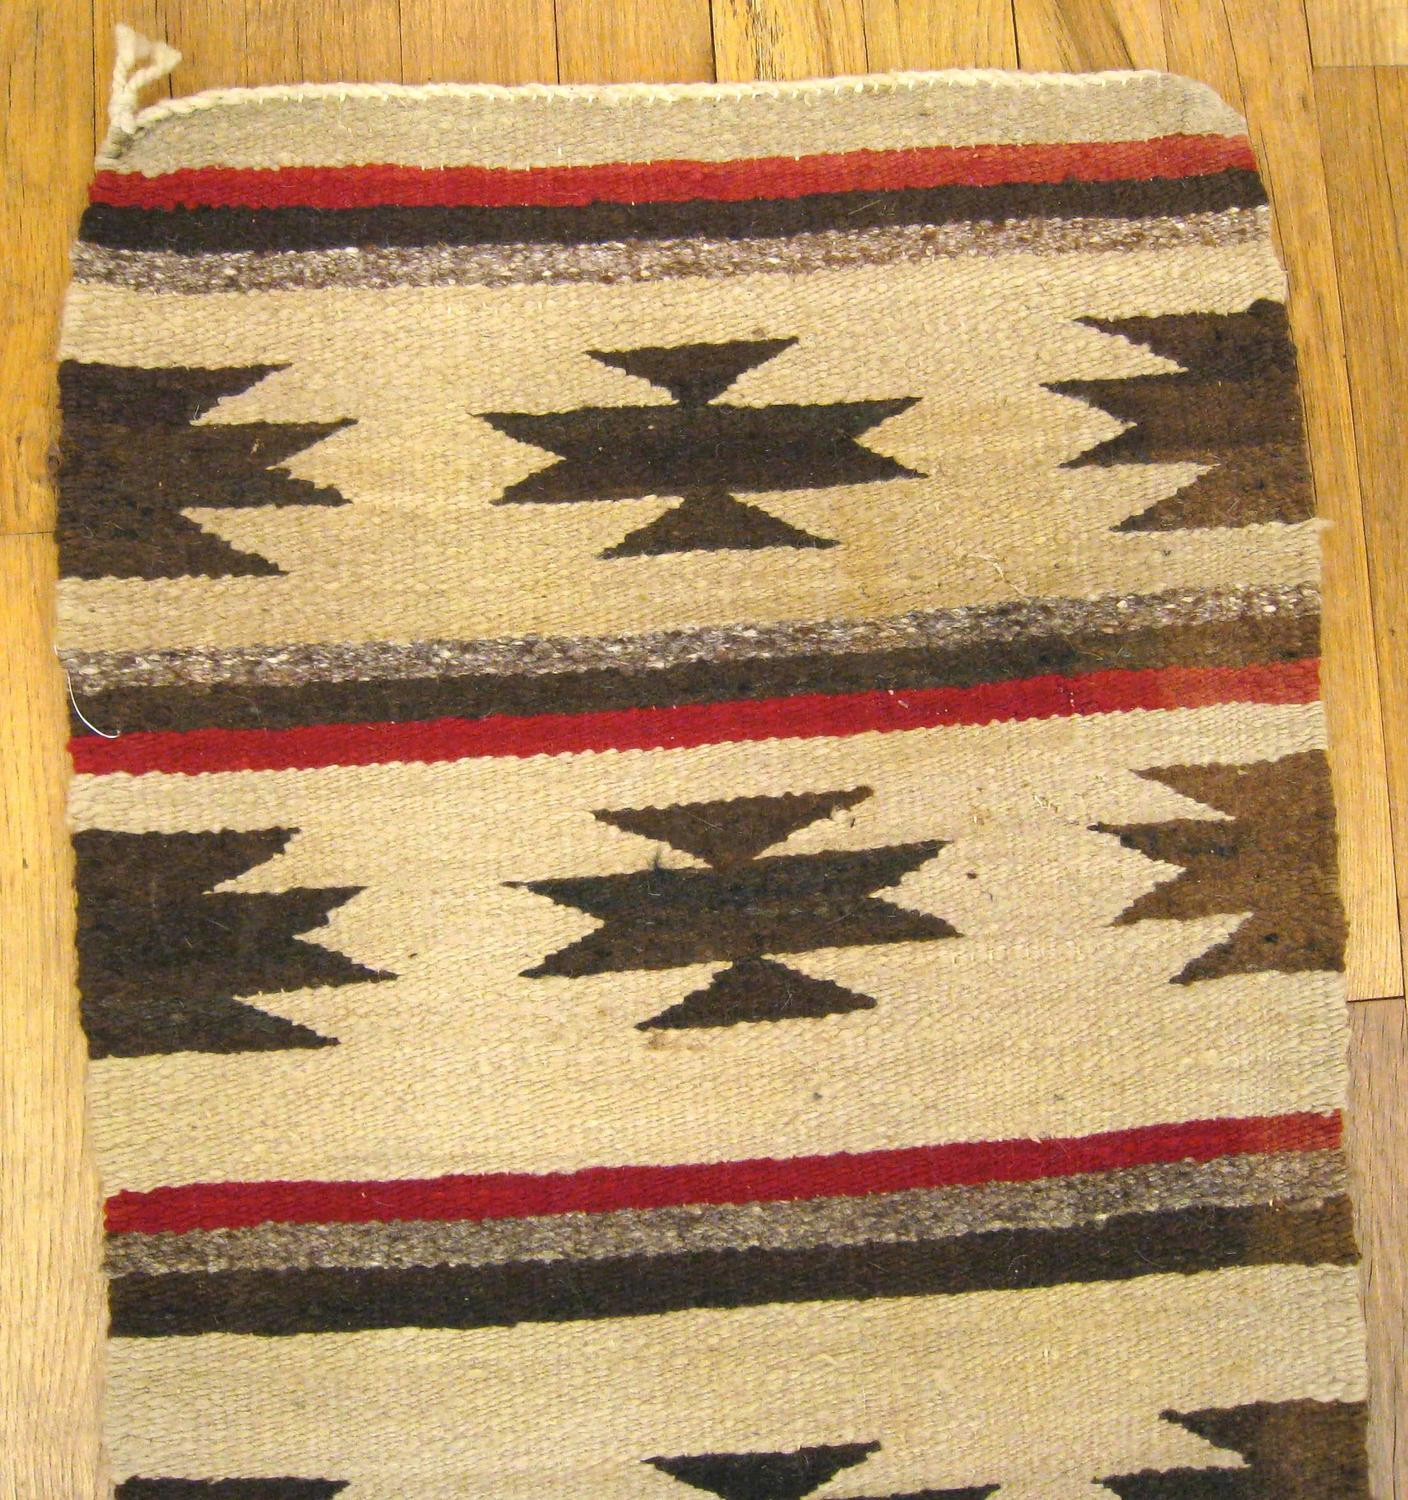 Mexican Rug Images: Vintage Mexican Zapotec Rug With Stars And Stripes Design